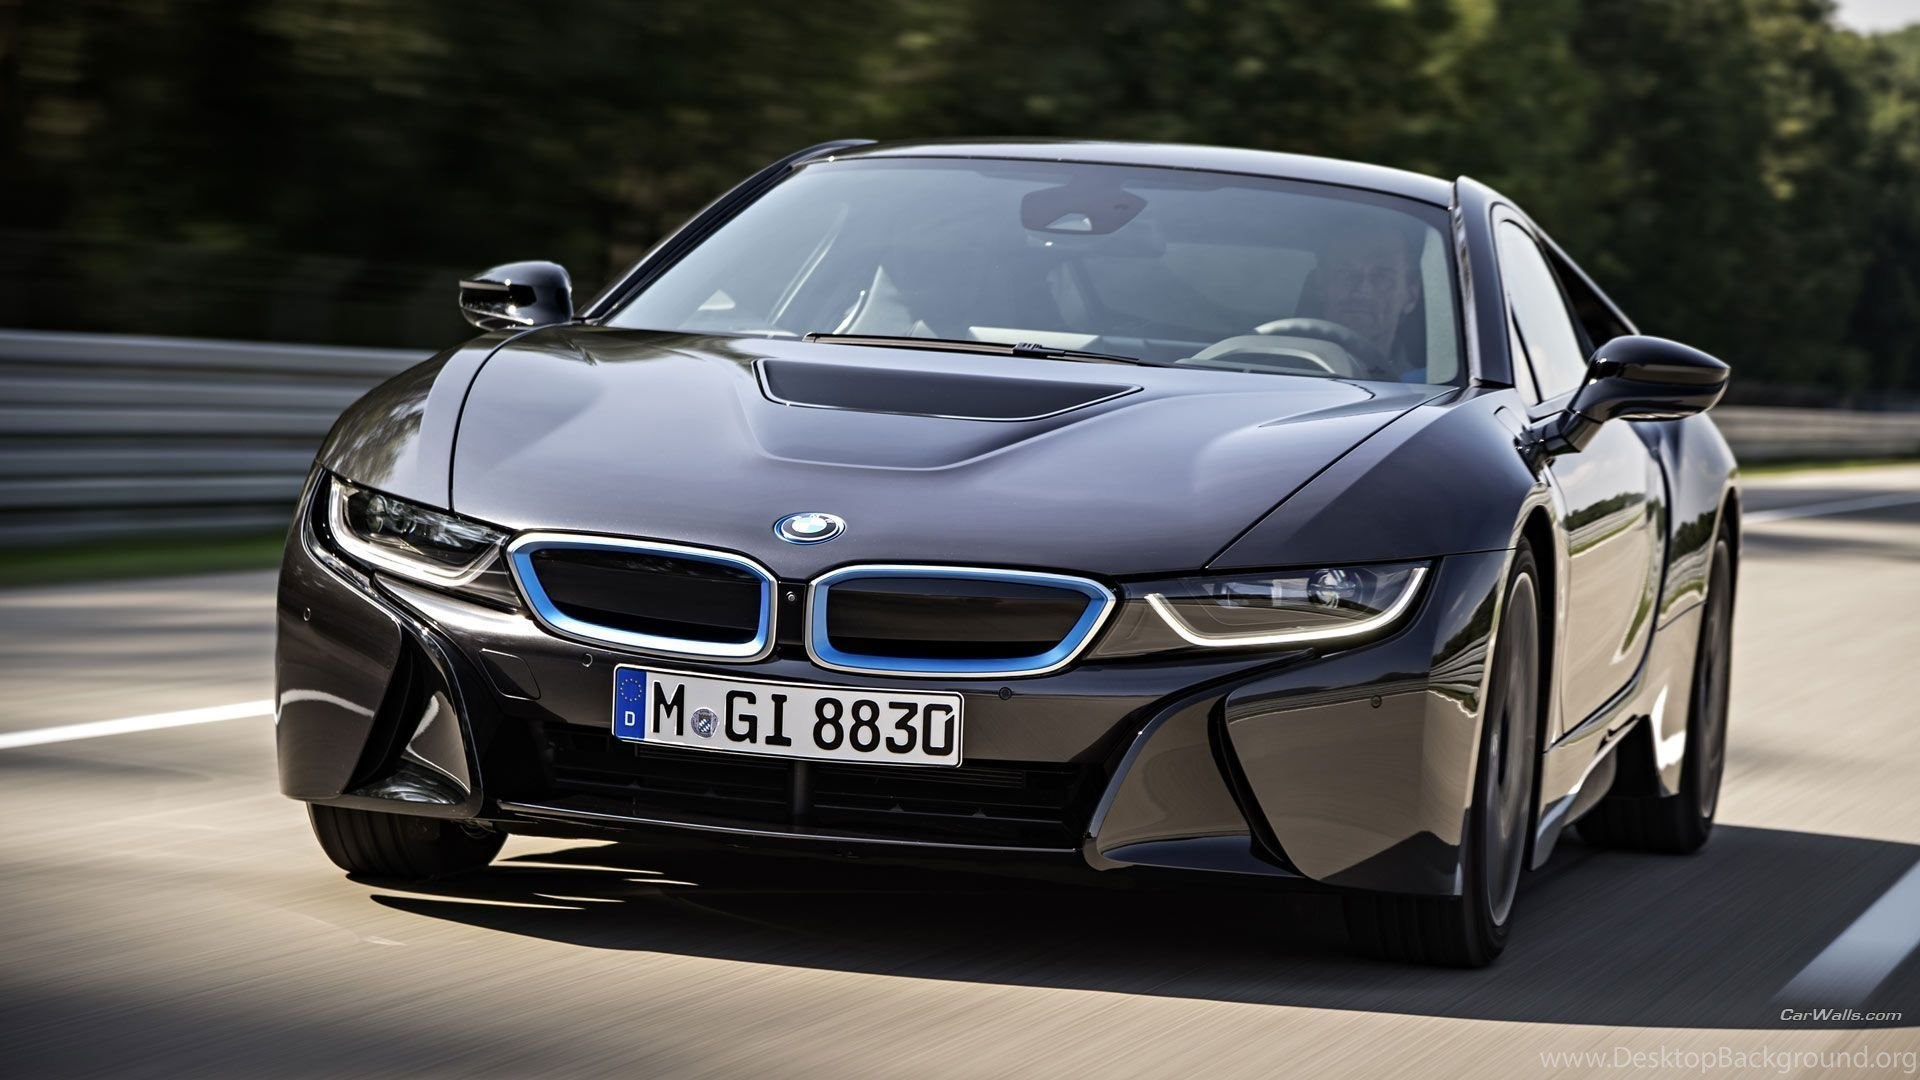 18 2015 Bmw I8 Hd Wallpapers Desktop Background